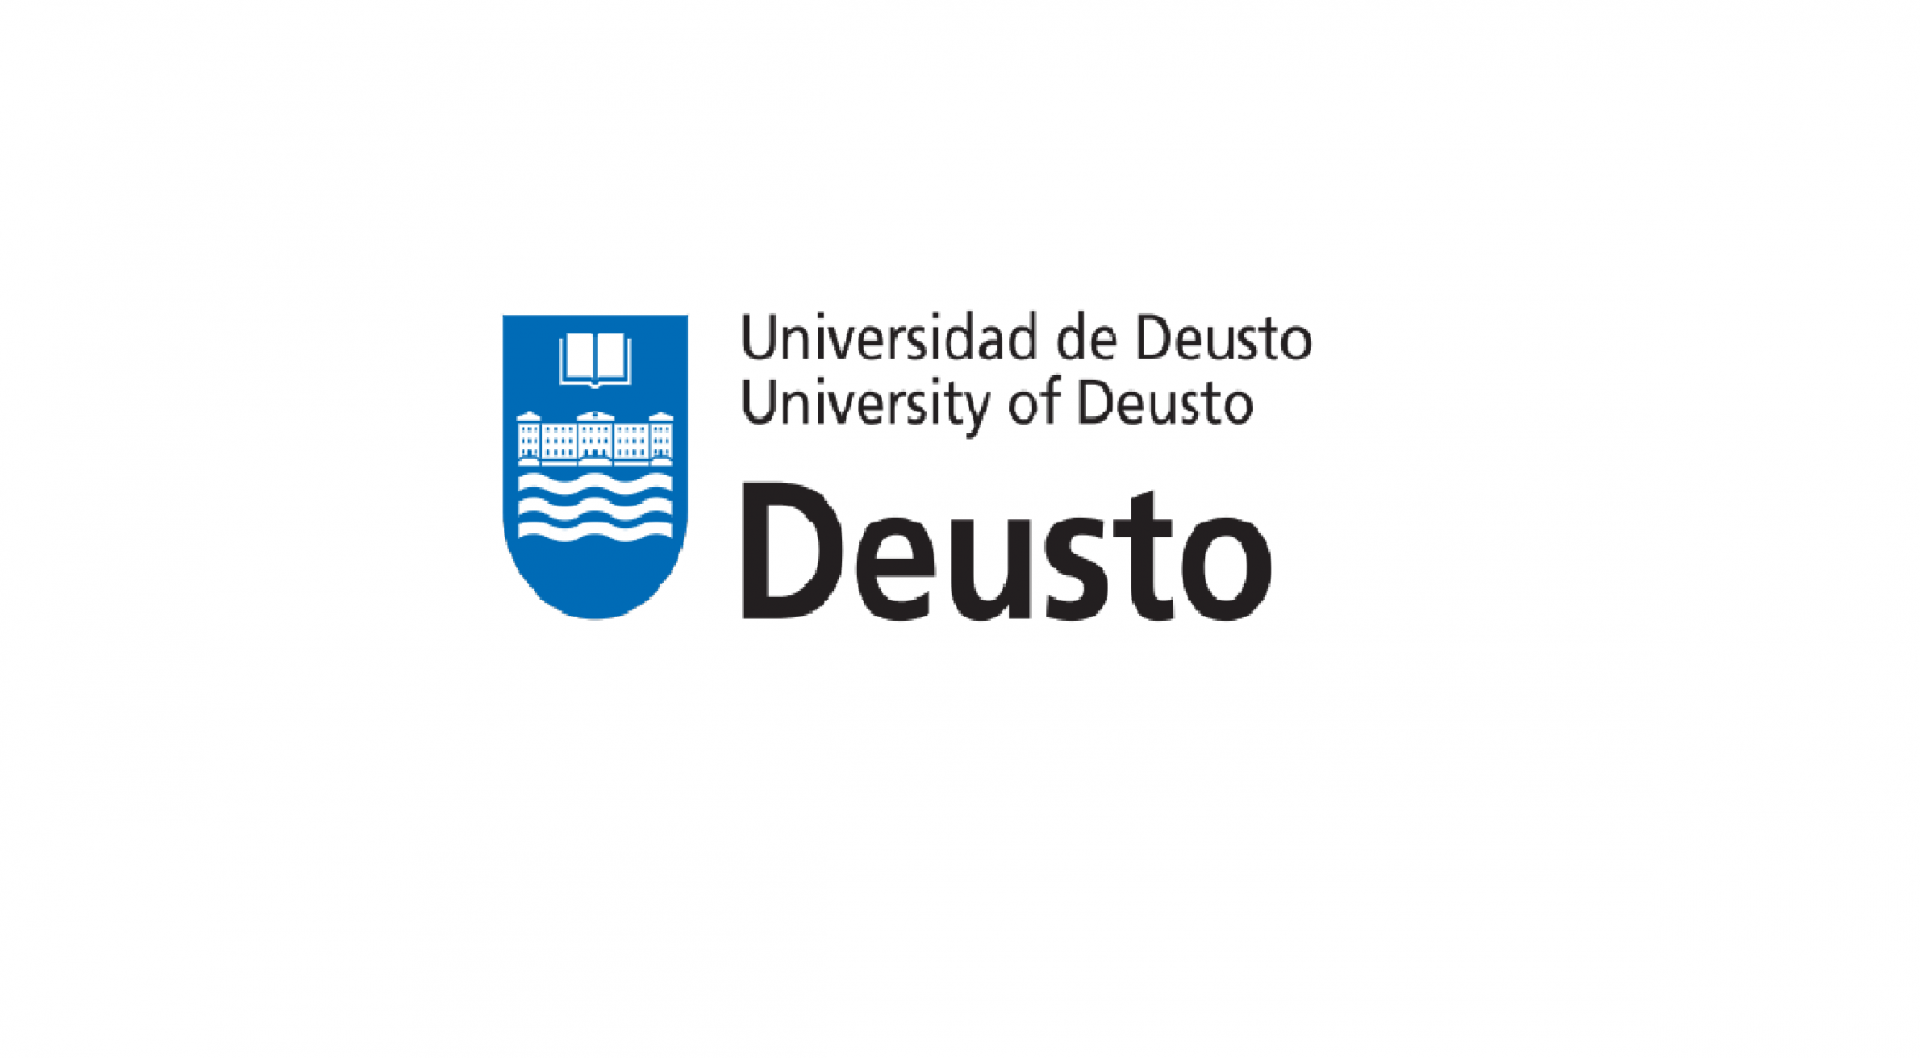 SPAIN- UNIVERSITY OF DEUSTO – Francisca SAUQUILLO PÉREZ DEL ARCO